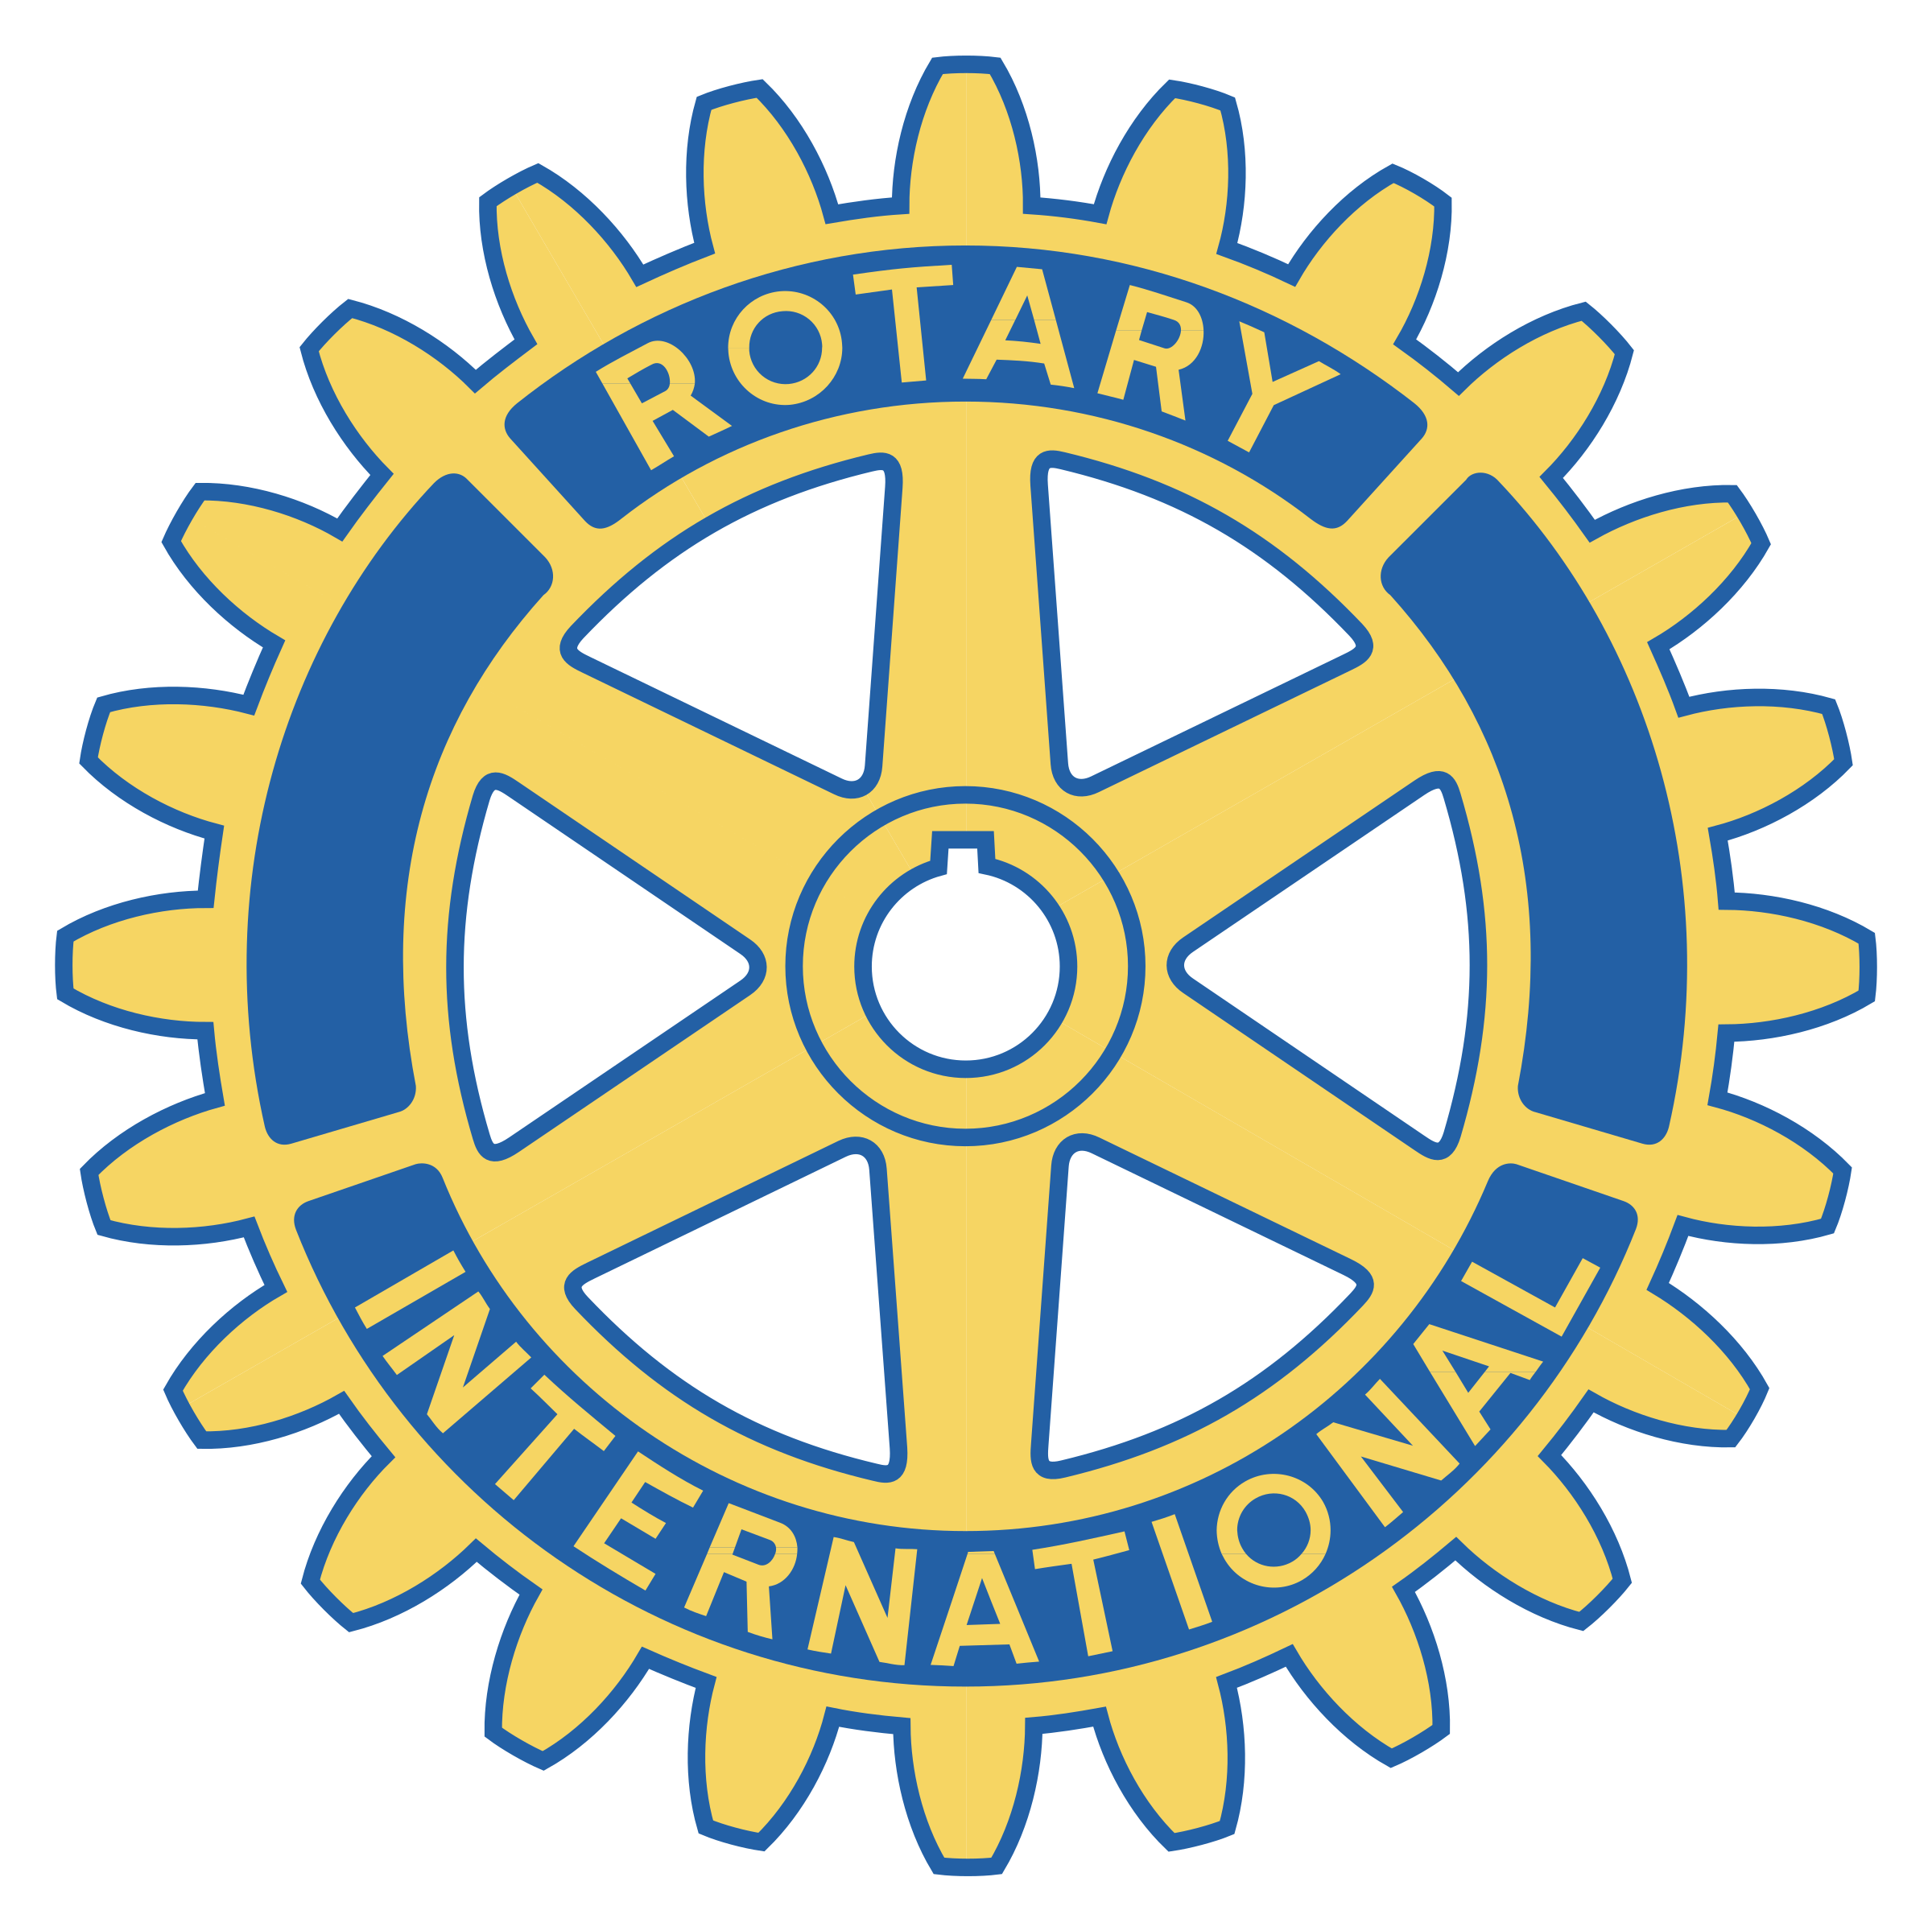 Churchill-Wilkins Rotary Club